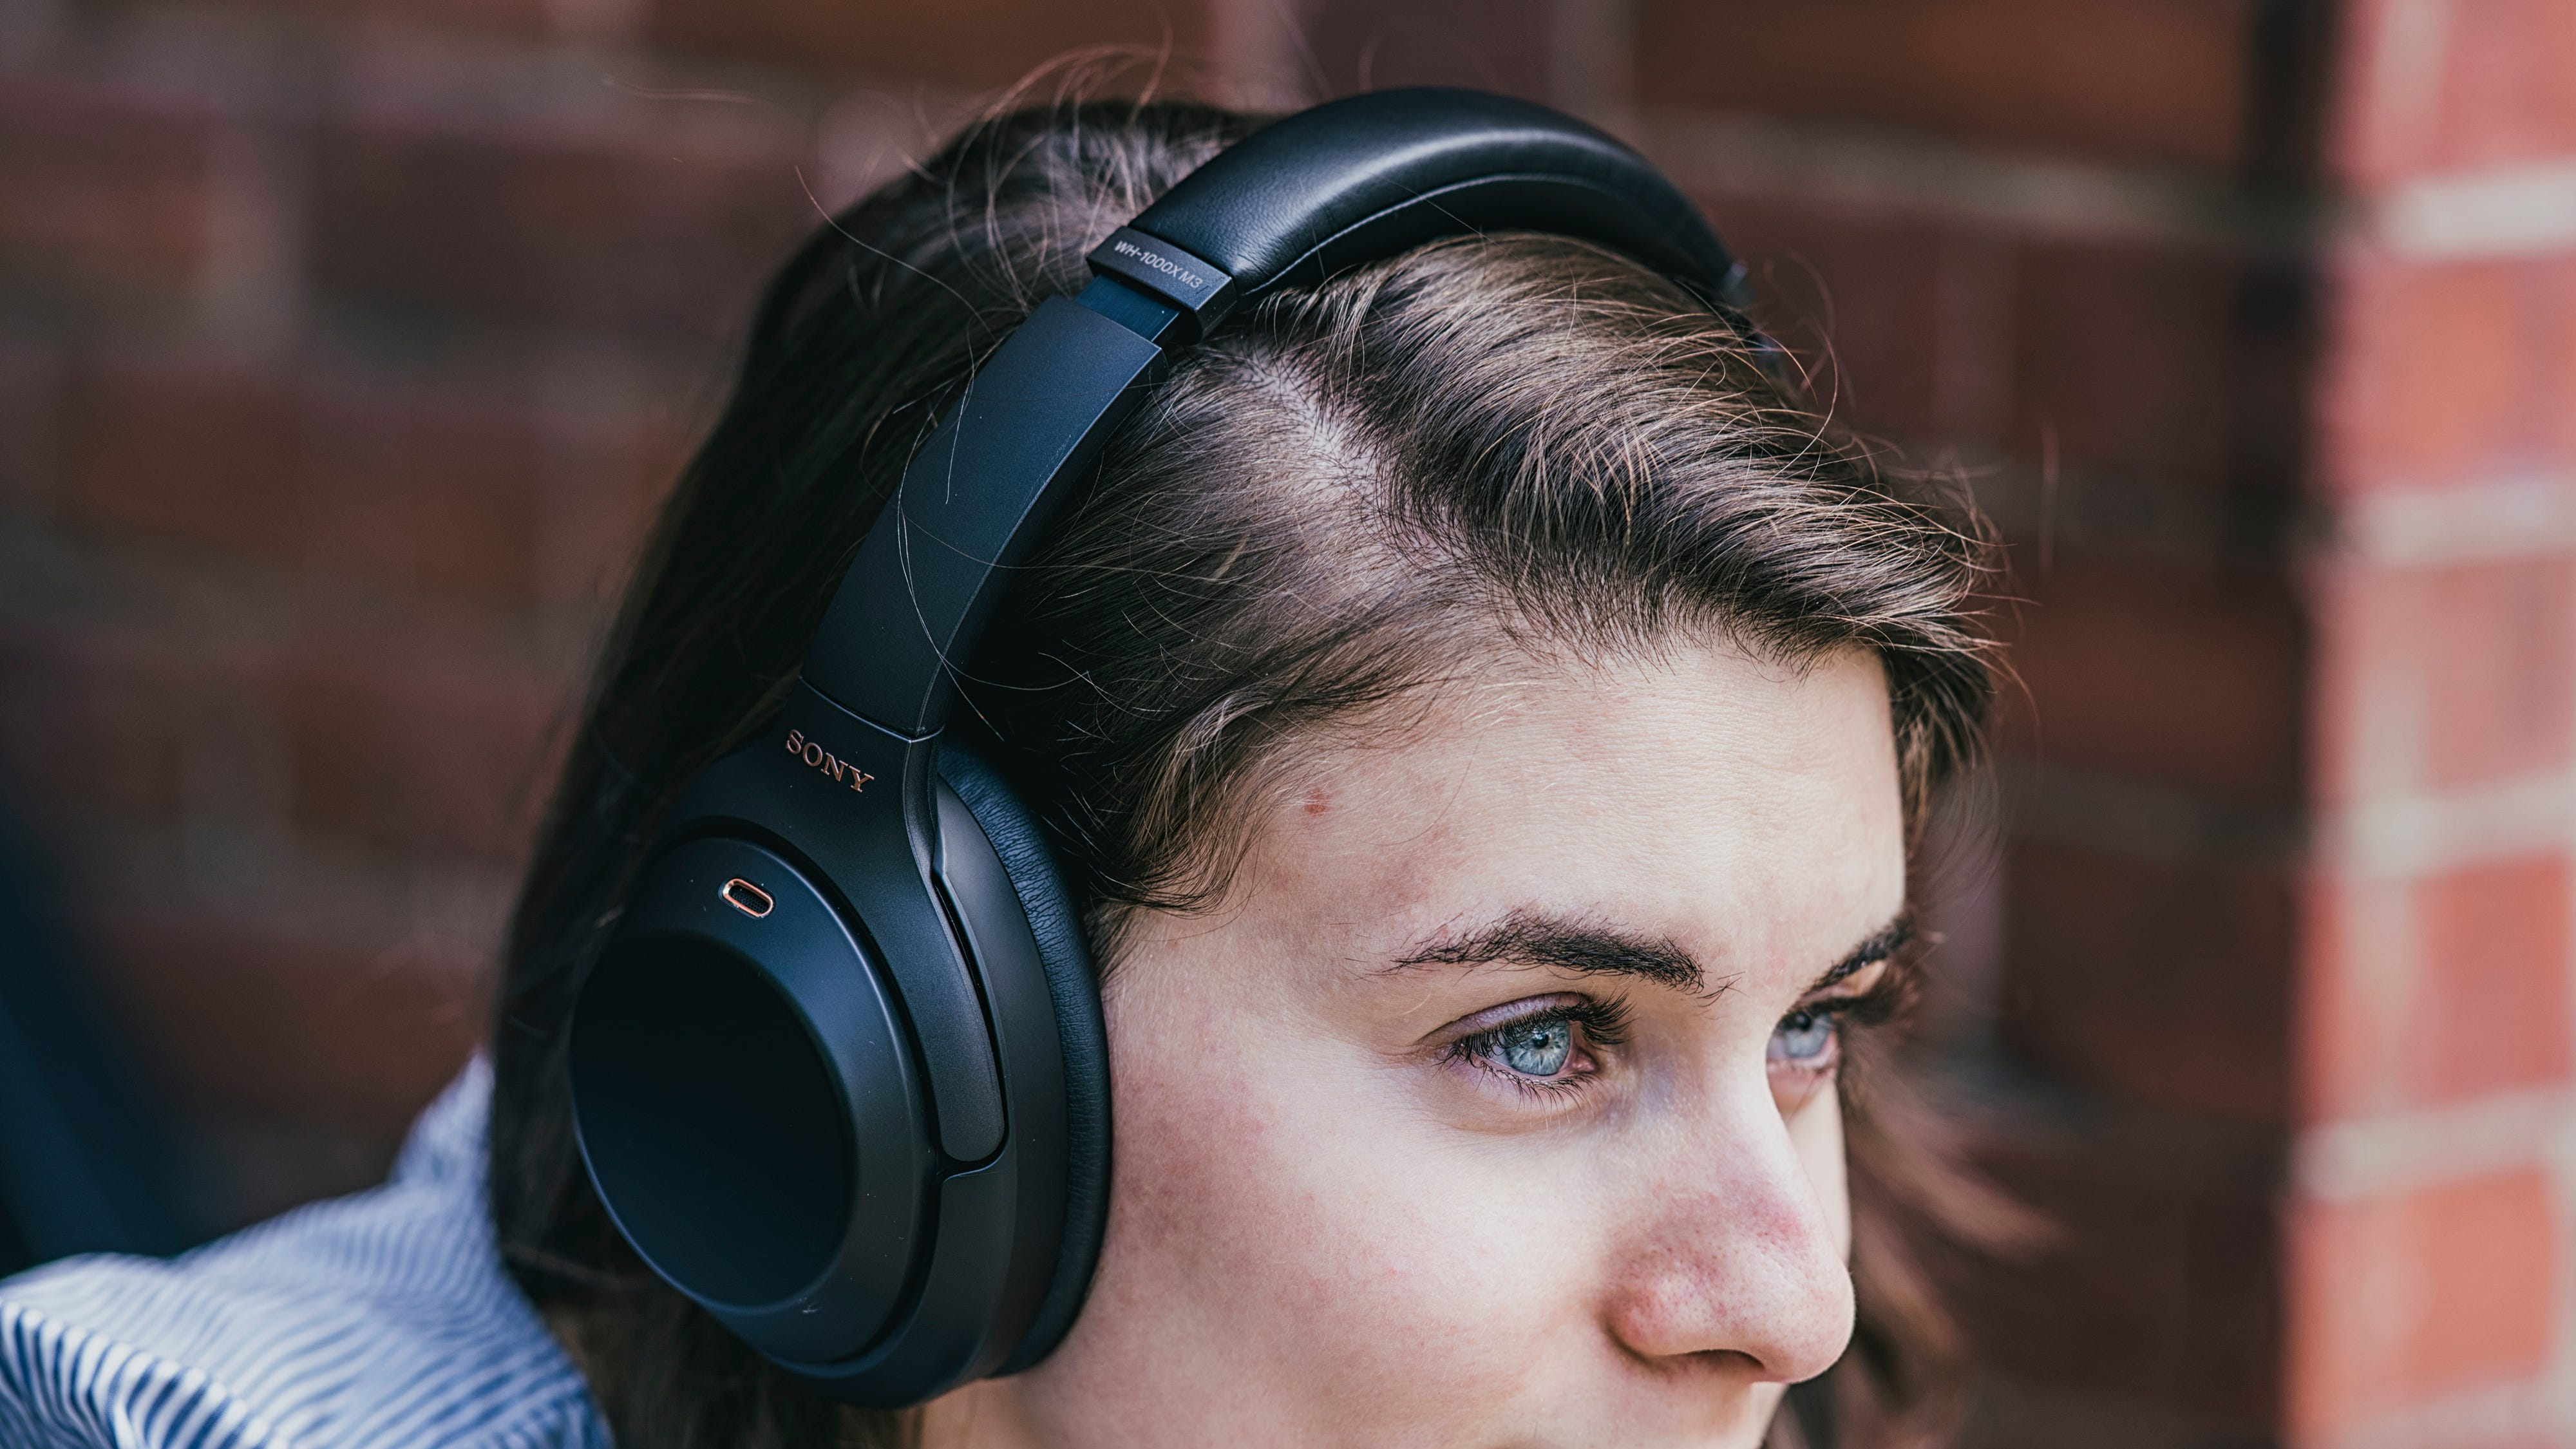 The 5 Best Noise-Cancelling Headphones available in India